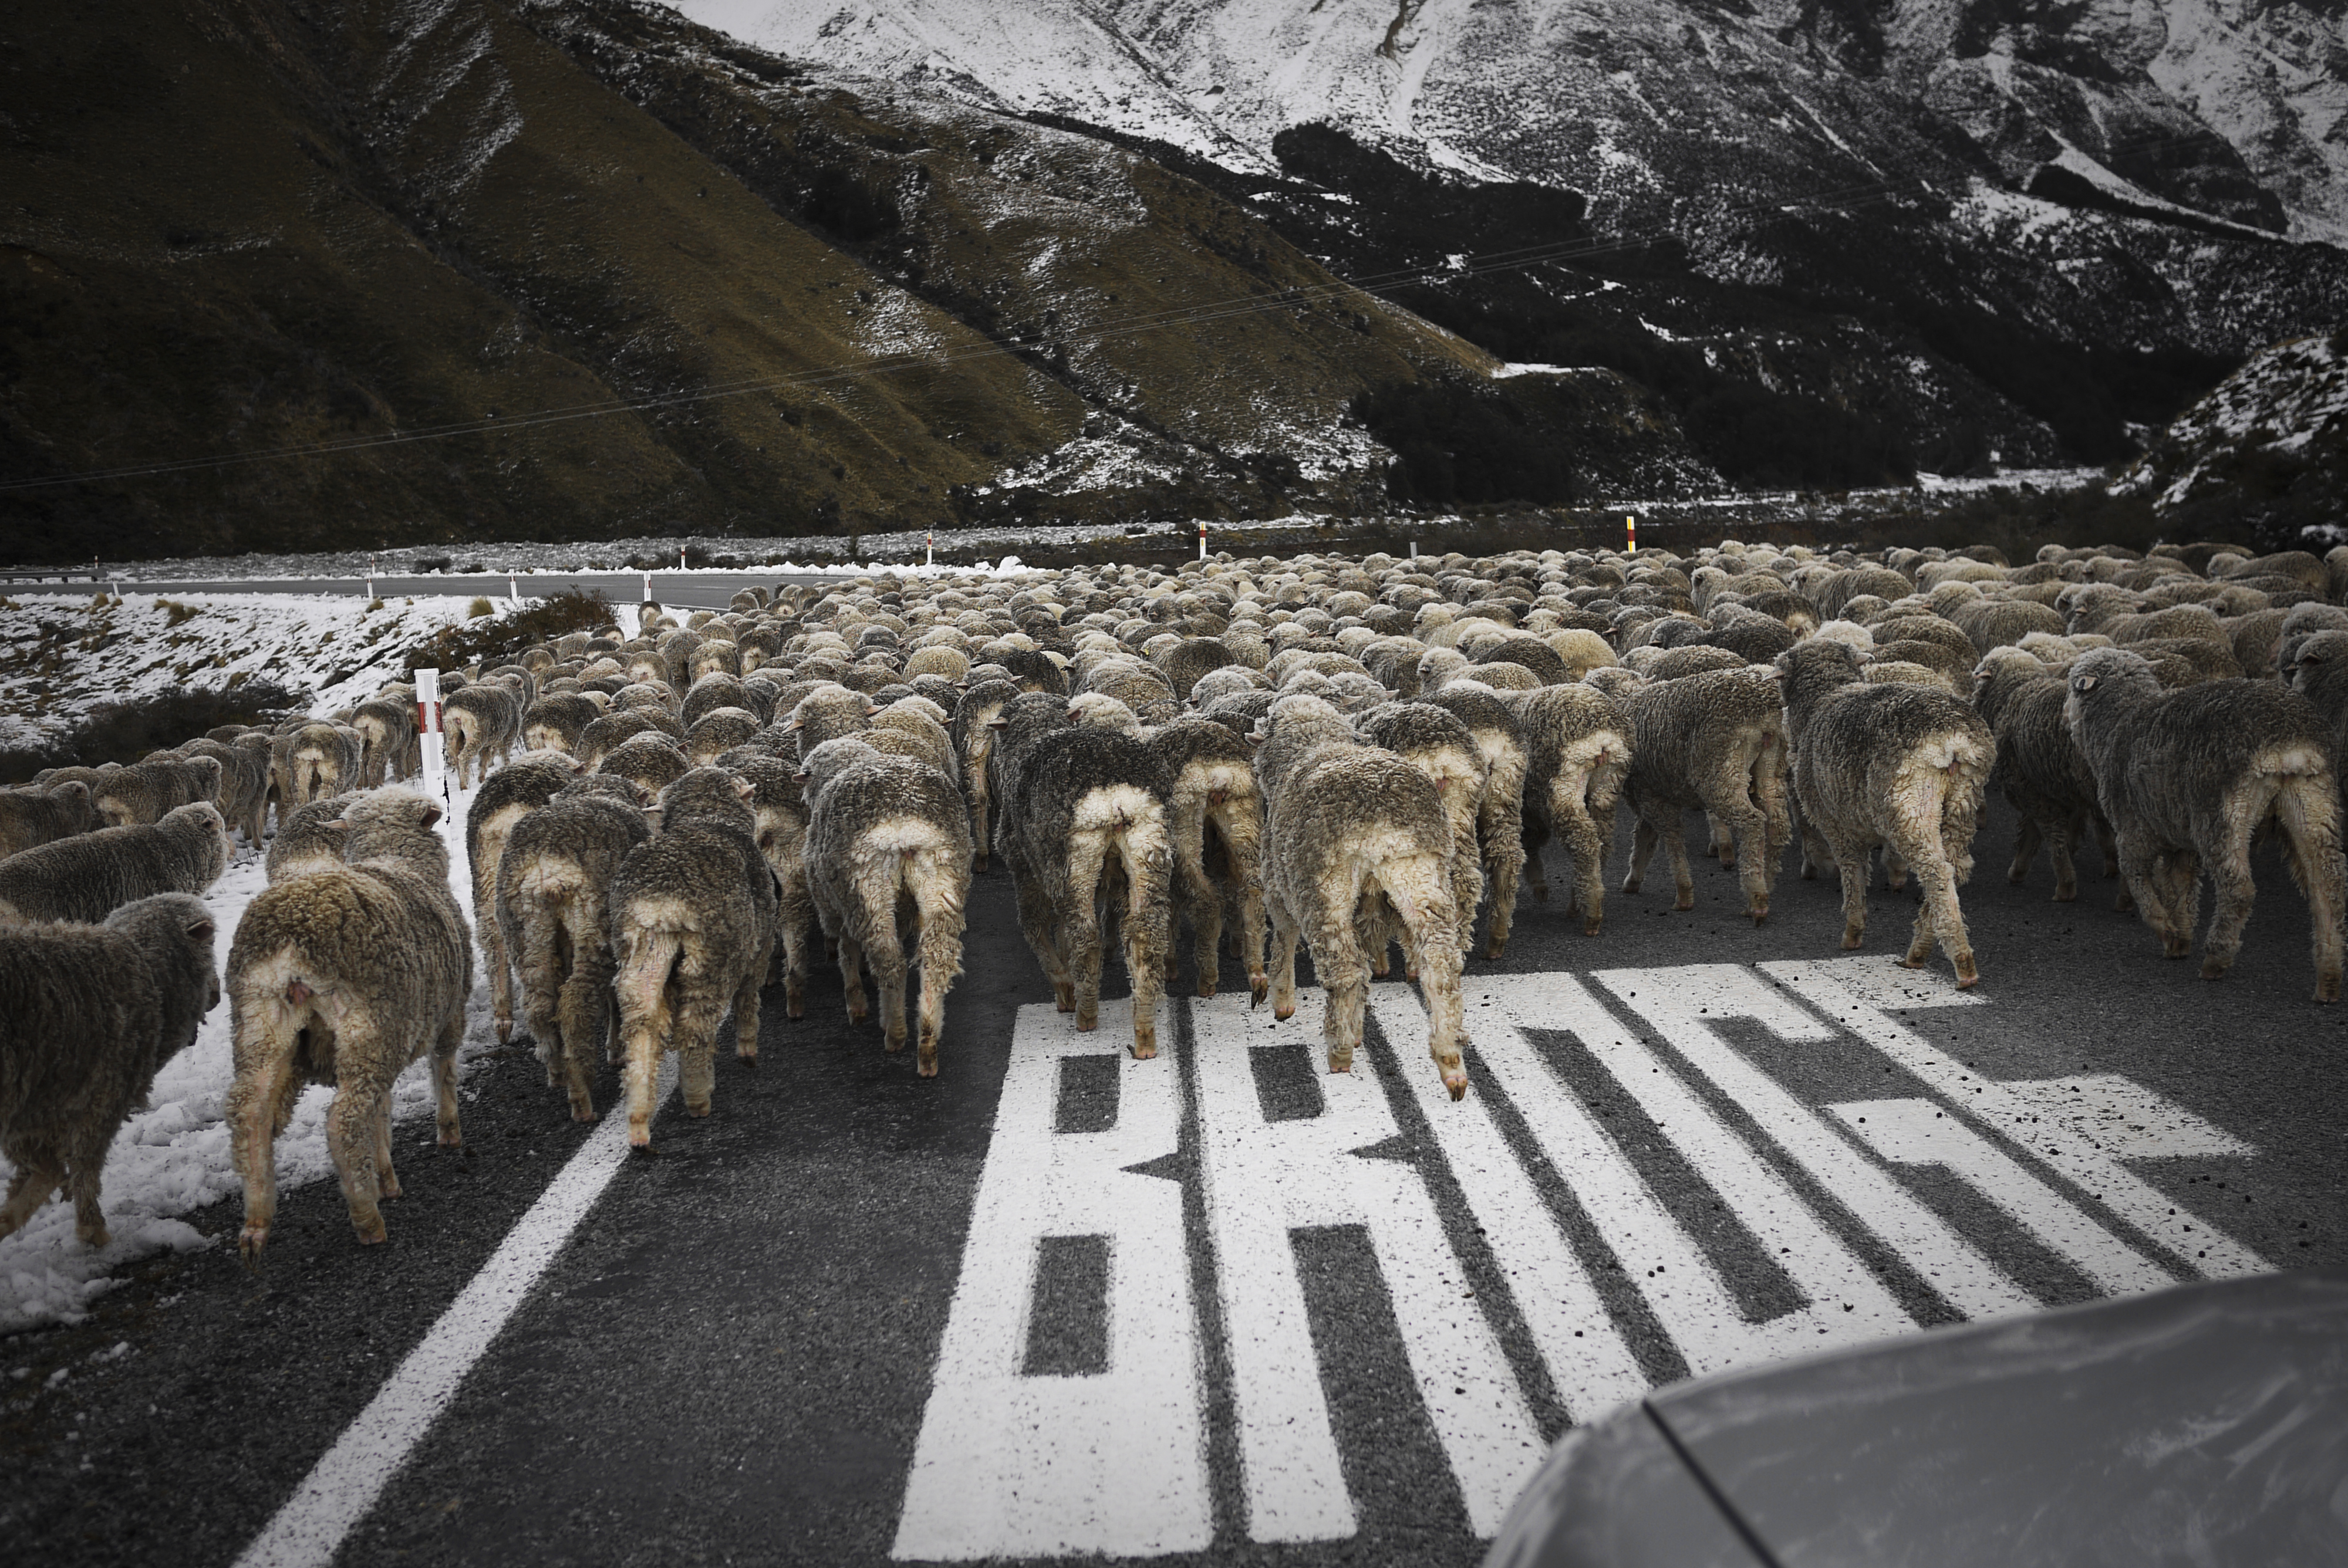 Crossing sheep // New Zealand